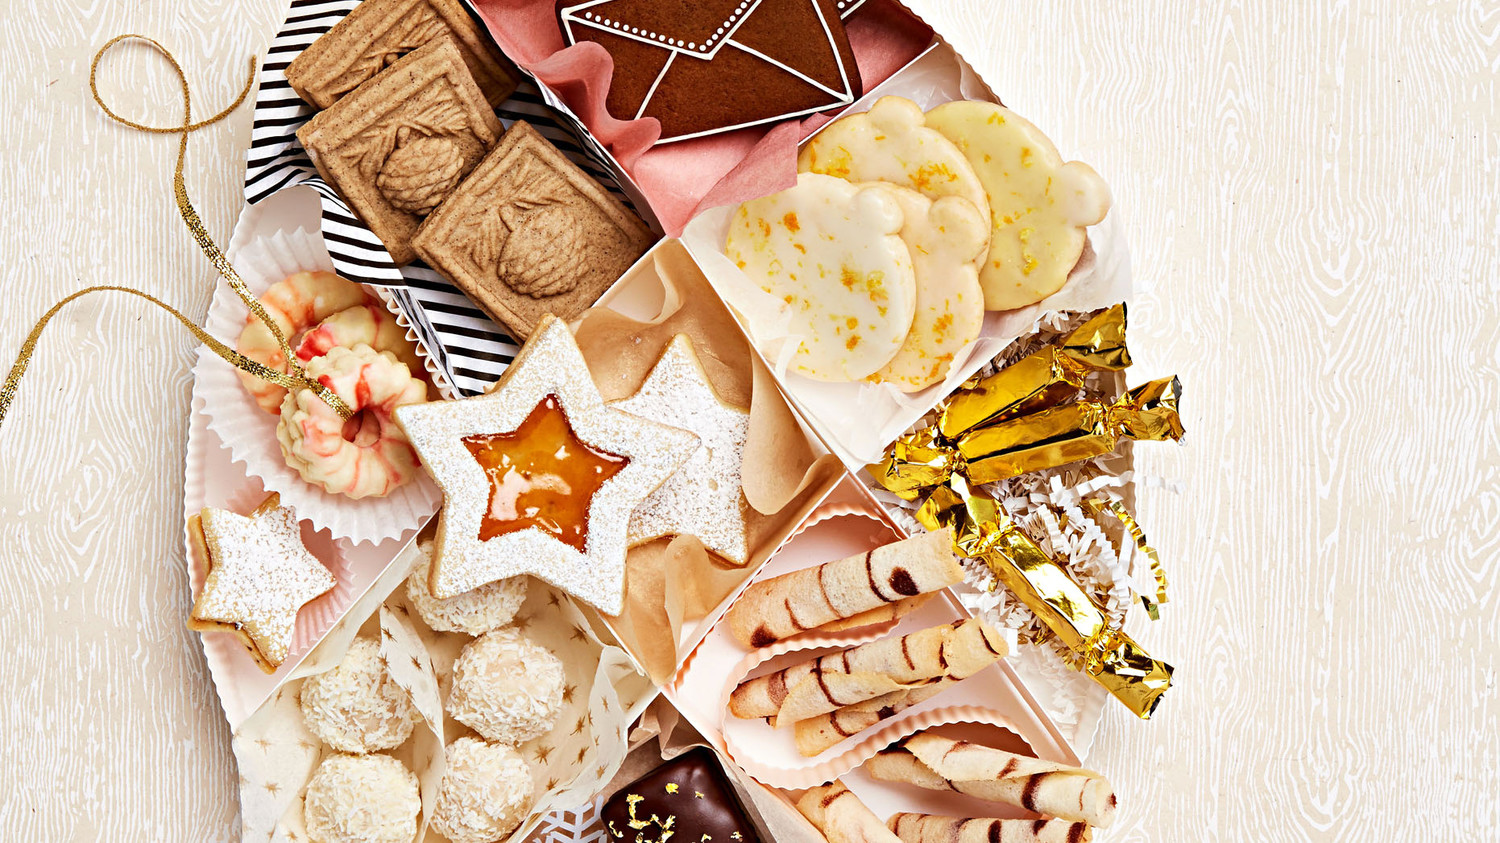 Make Sweet Magic with Our Latest Cookie & Candy Recipes